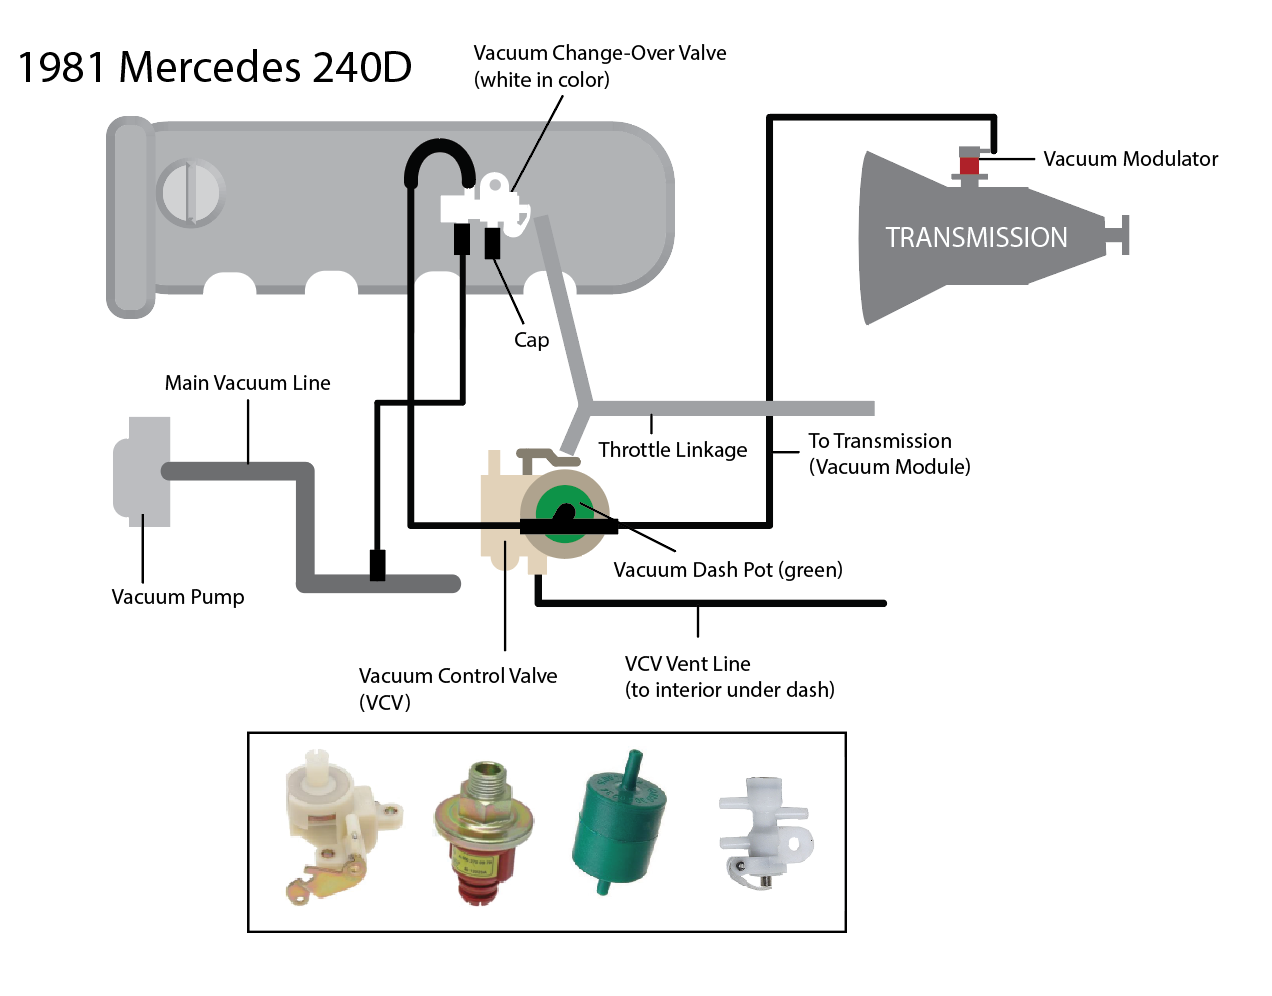 280e Vacuum Diagram Reinvent Your Wiring Switch Mercedes Benz W123 And R107 Diy Transmission Rh Mercedesdiy Blogspot Com Irc Section